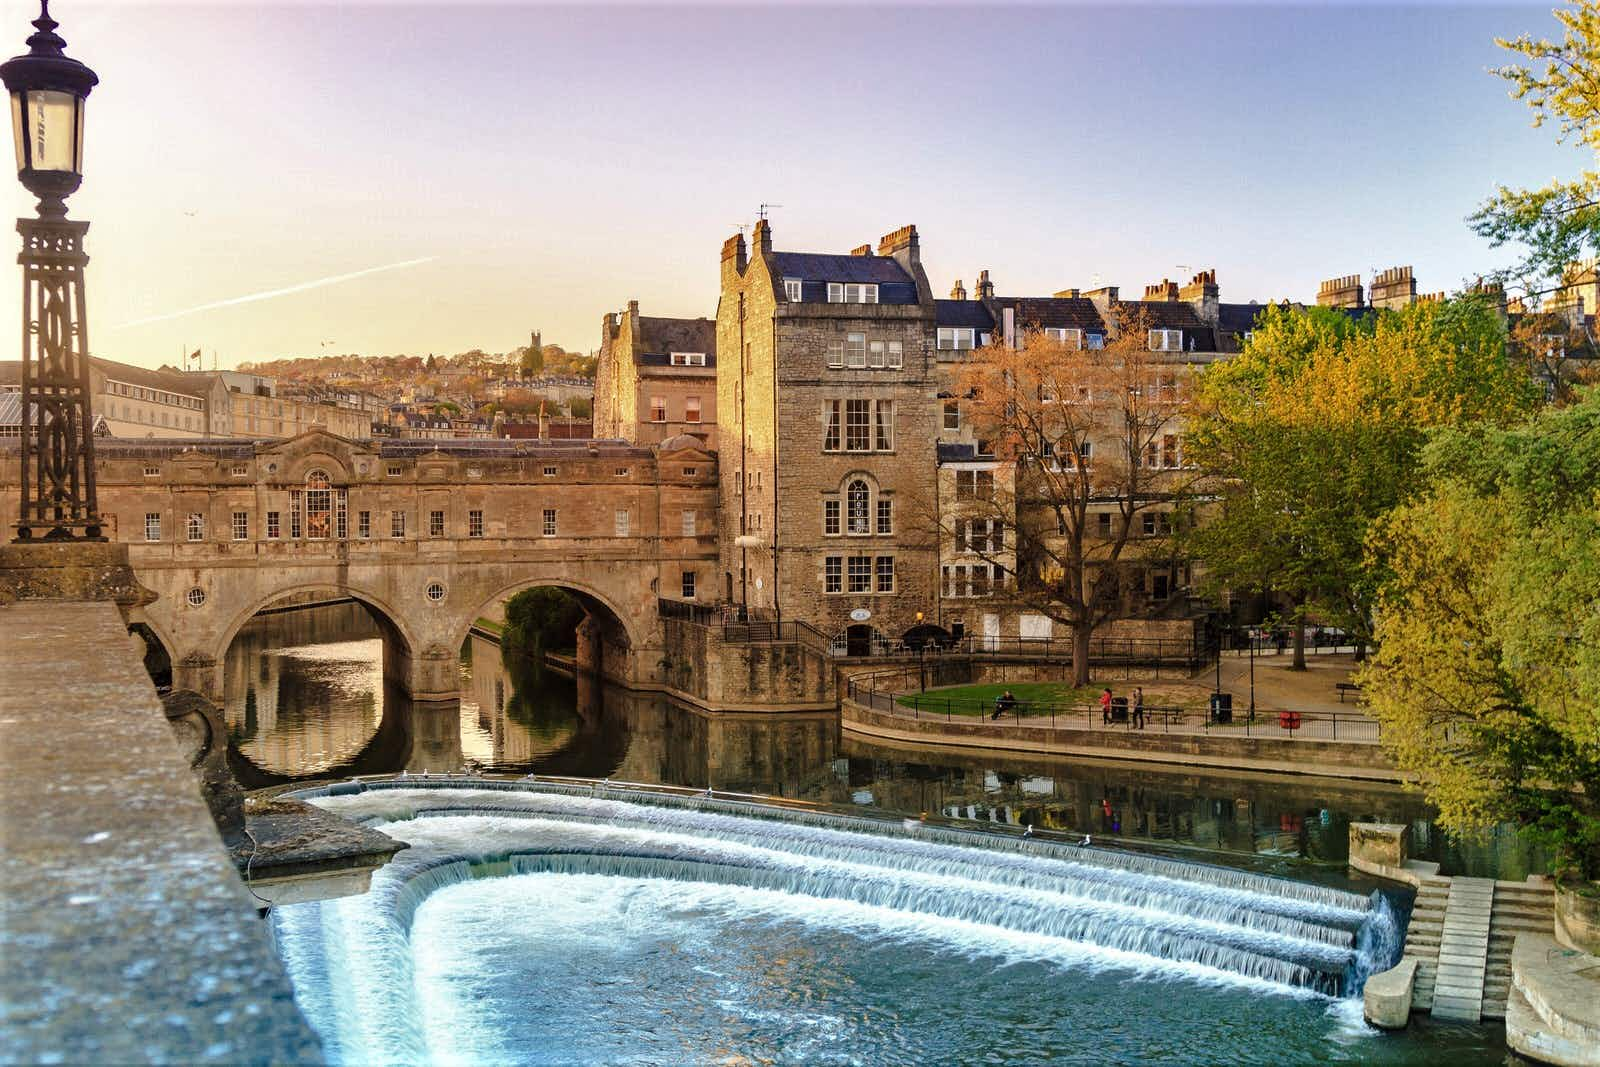 Pulteney Bridge over the River Avon is especially photogenic at sunset © bento42894 / Shutterstock